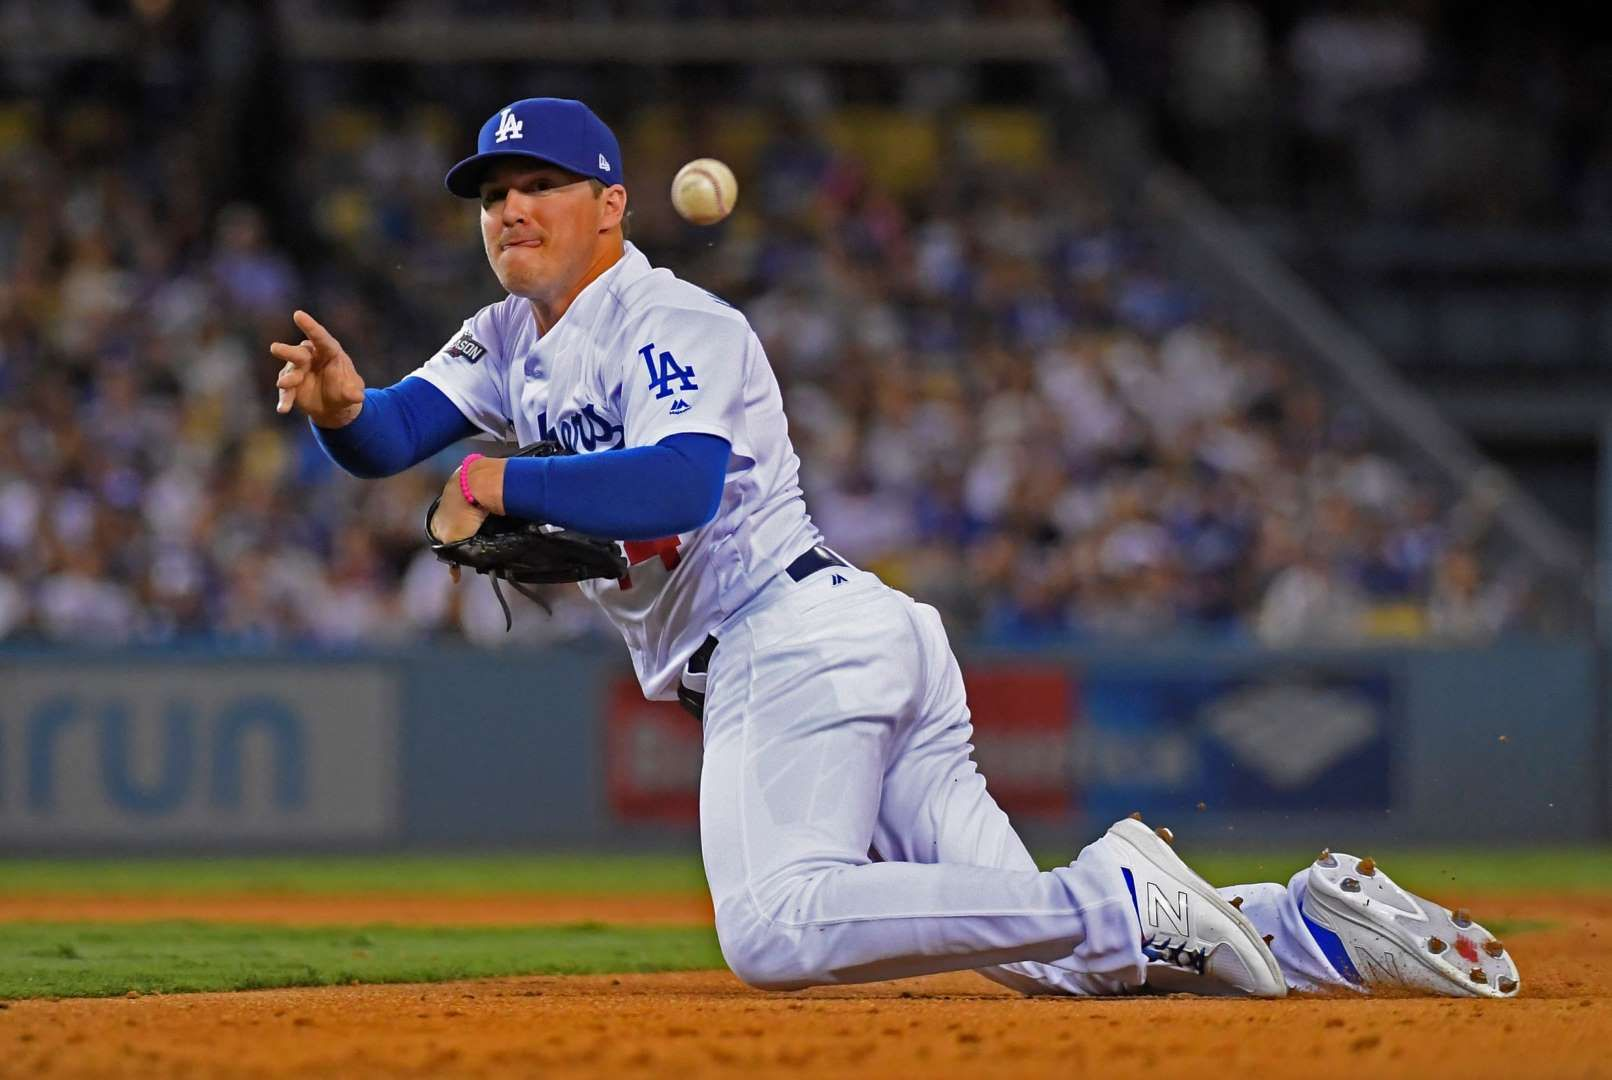 Desperate Throw The Dodgers Enrique Hernandez Tries To Make A Play During Game 4 Of The Nlcs Oct 19 In Los Angeles Dodgers Baseball Dodgers Mlb